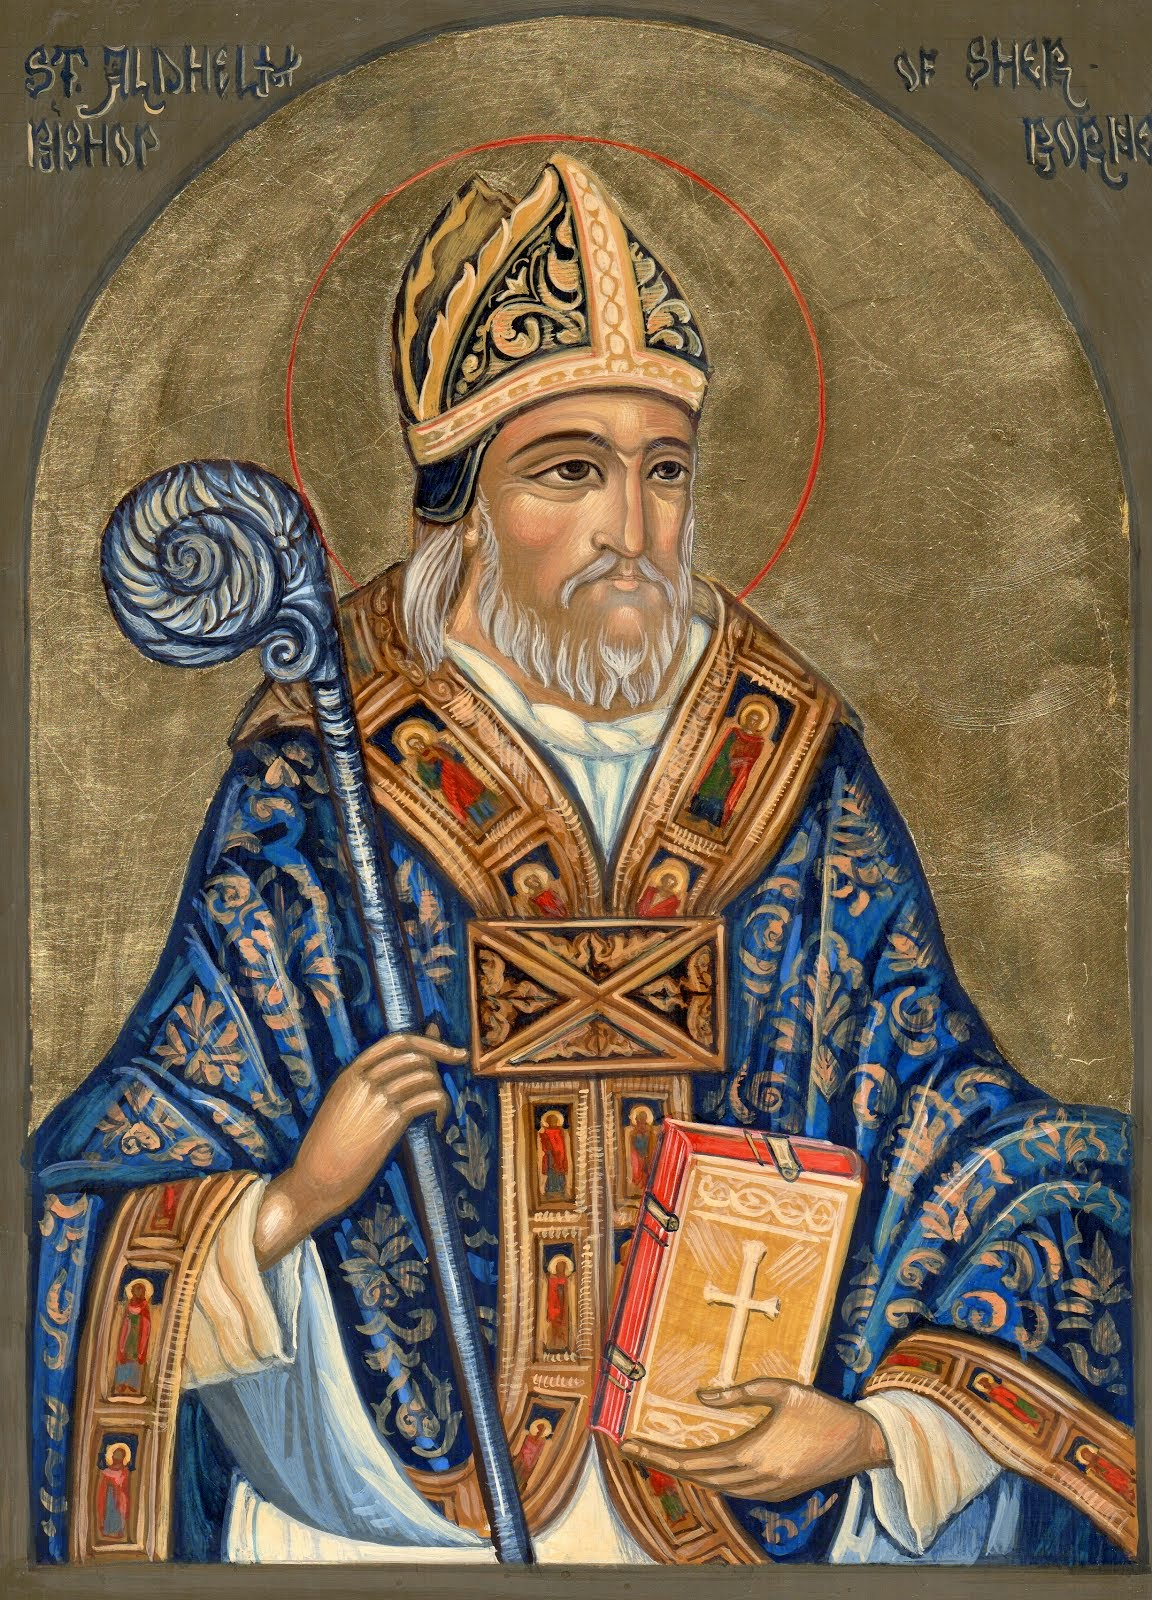 A new Icon of Saint Aldhelm